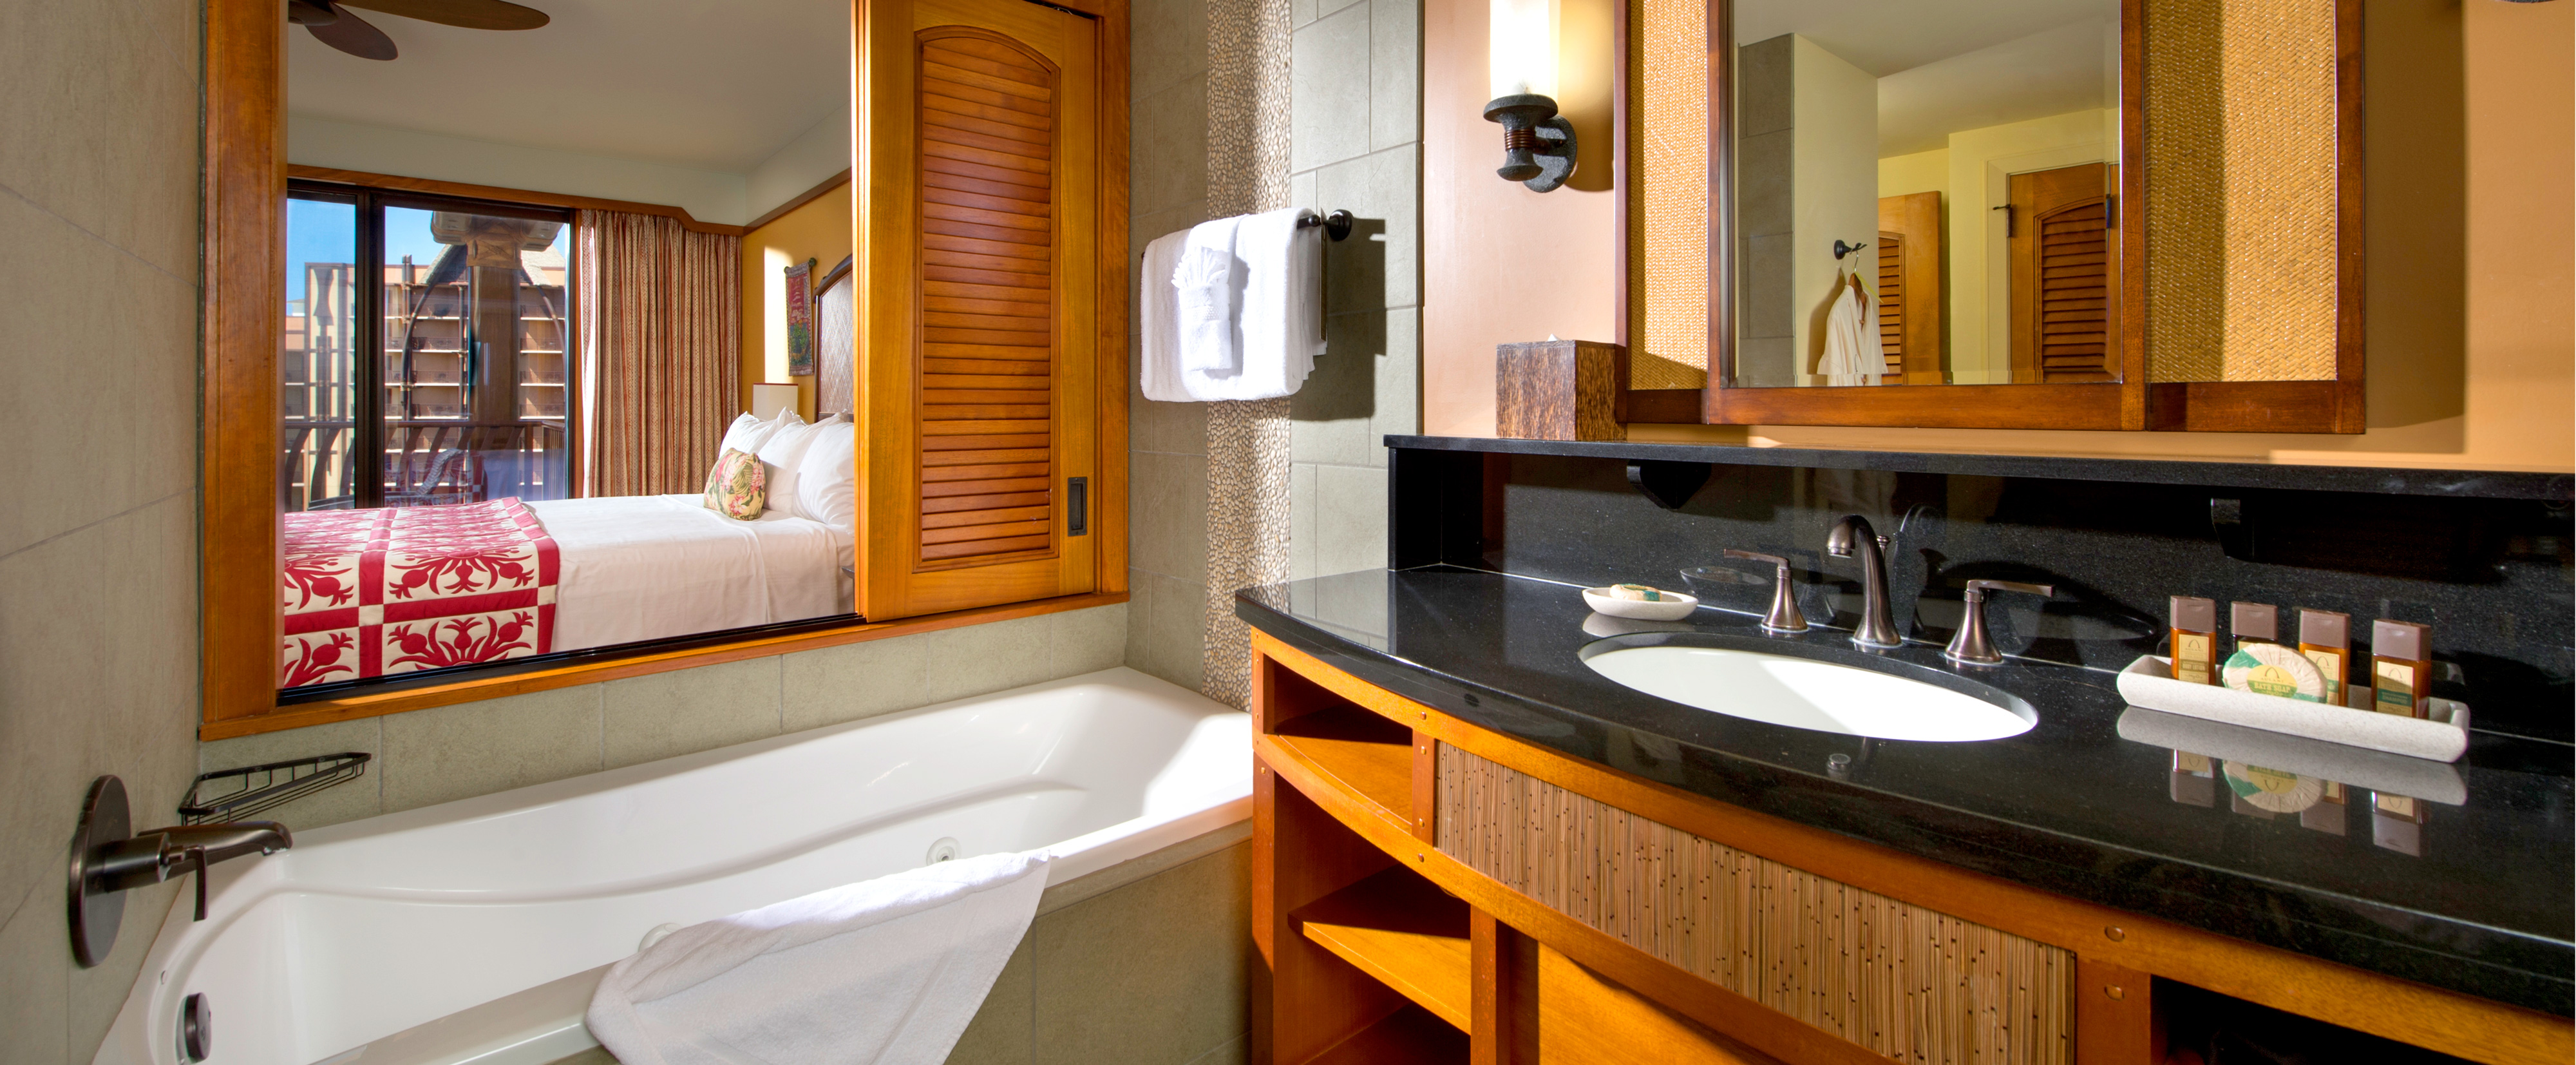 A master bathroom with whirlpool tub looks on an adjoining bedroom through a large wooden-shuttered window